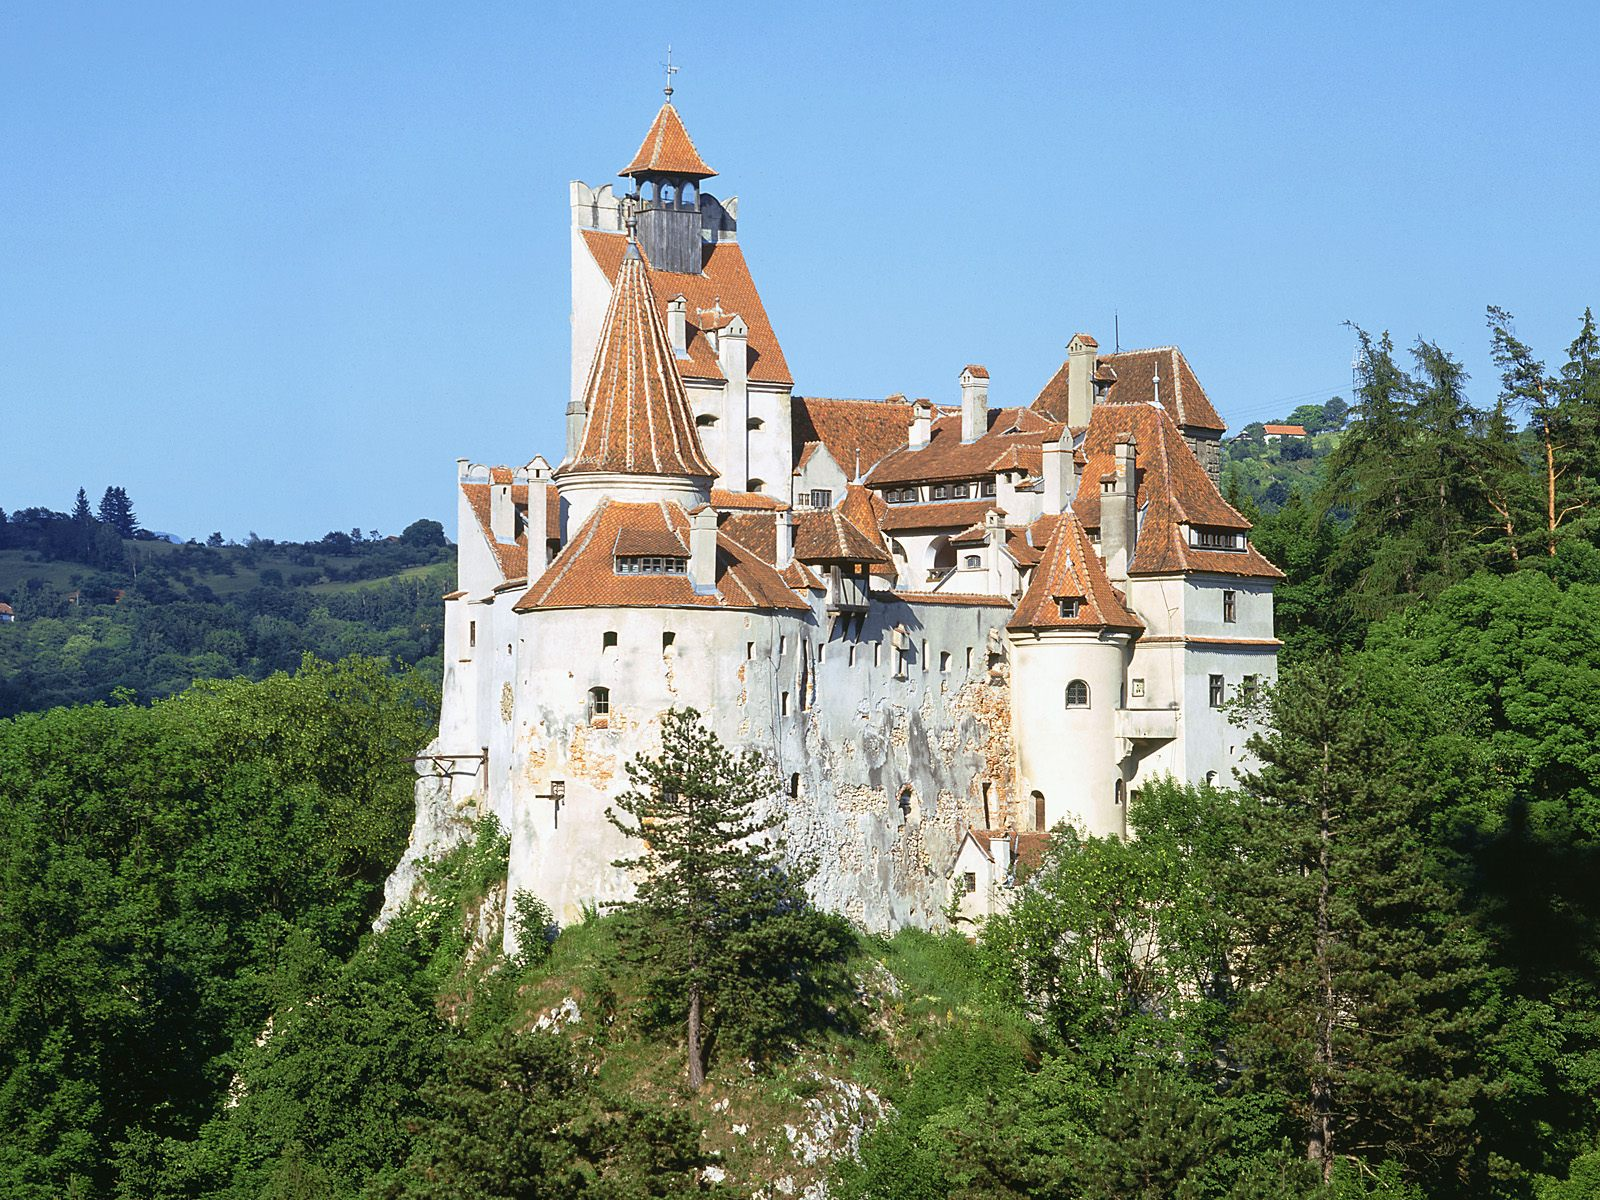 When We Look At The Location Of This Castle, We Should Consider Its  Historical Occupants. There Is The Possibility That Vlad Dracul And Vlad Dracula  Lived ...